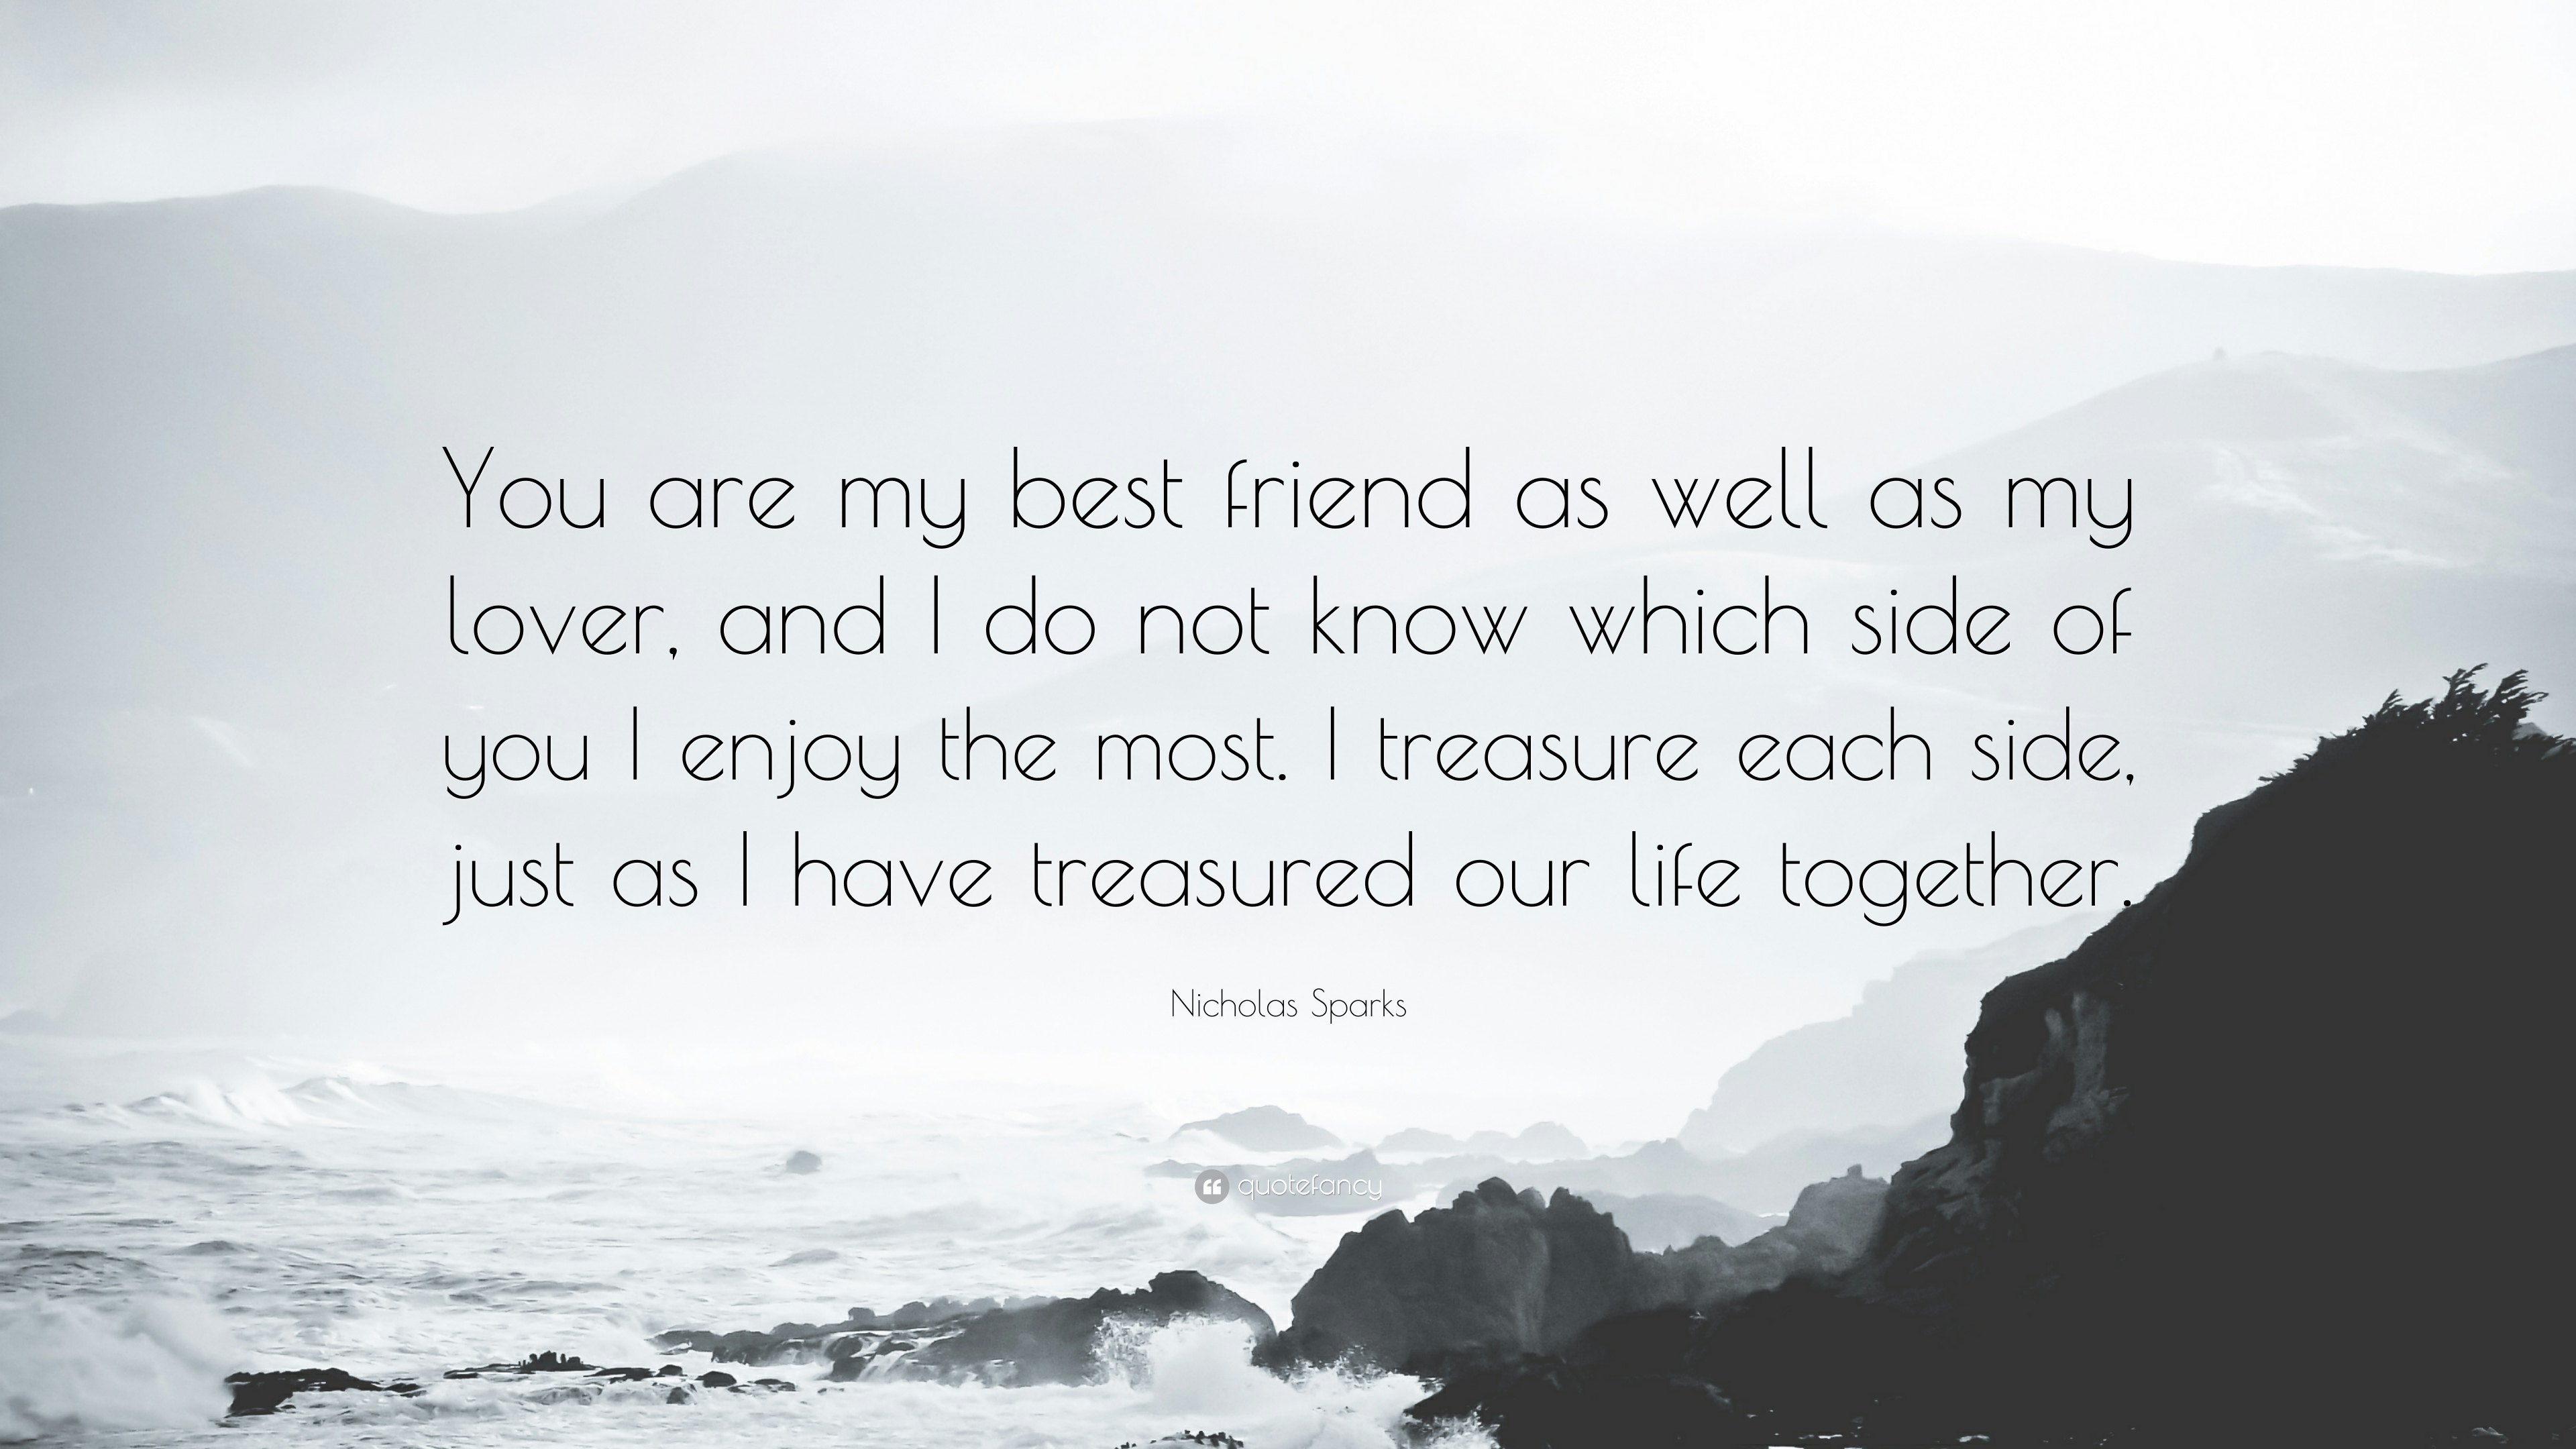 Nicholas Sparks Quote You Are My Best Friend As Well As My Lover